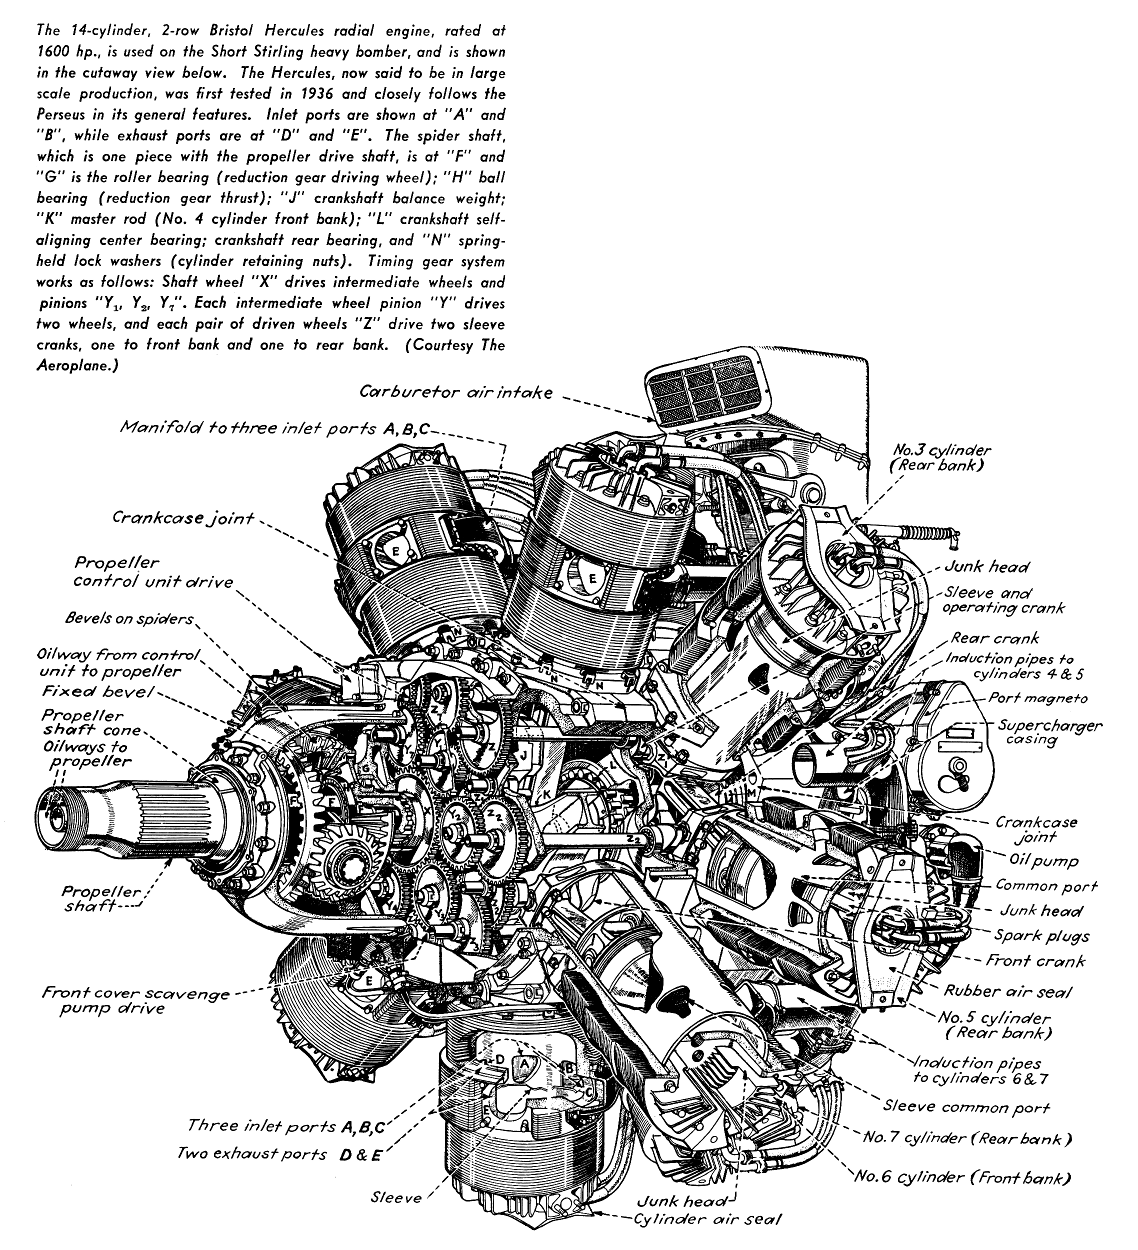 Ww2 Aircraft Cutaways Google Search Cutaway Aircraft